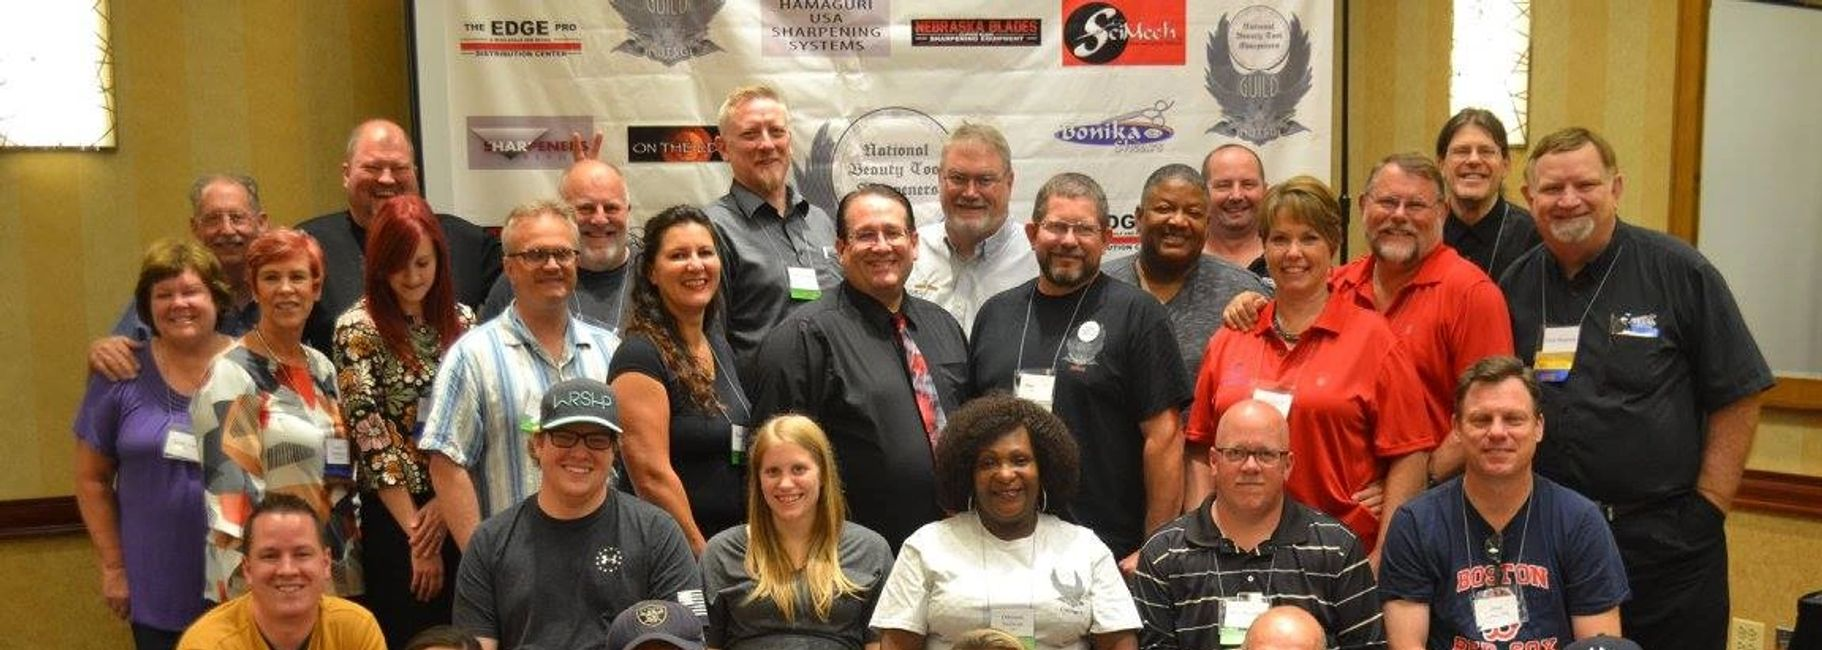 Group photo from 2017 Annual Convention in Alsip, IL.